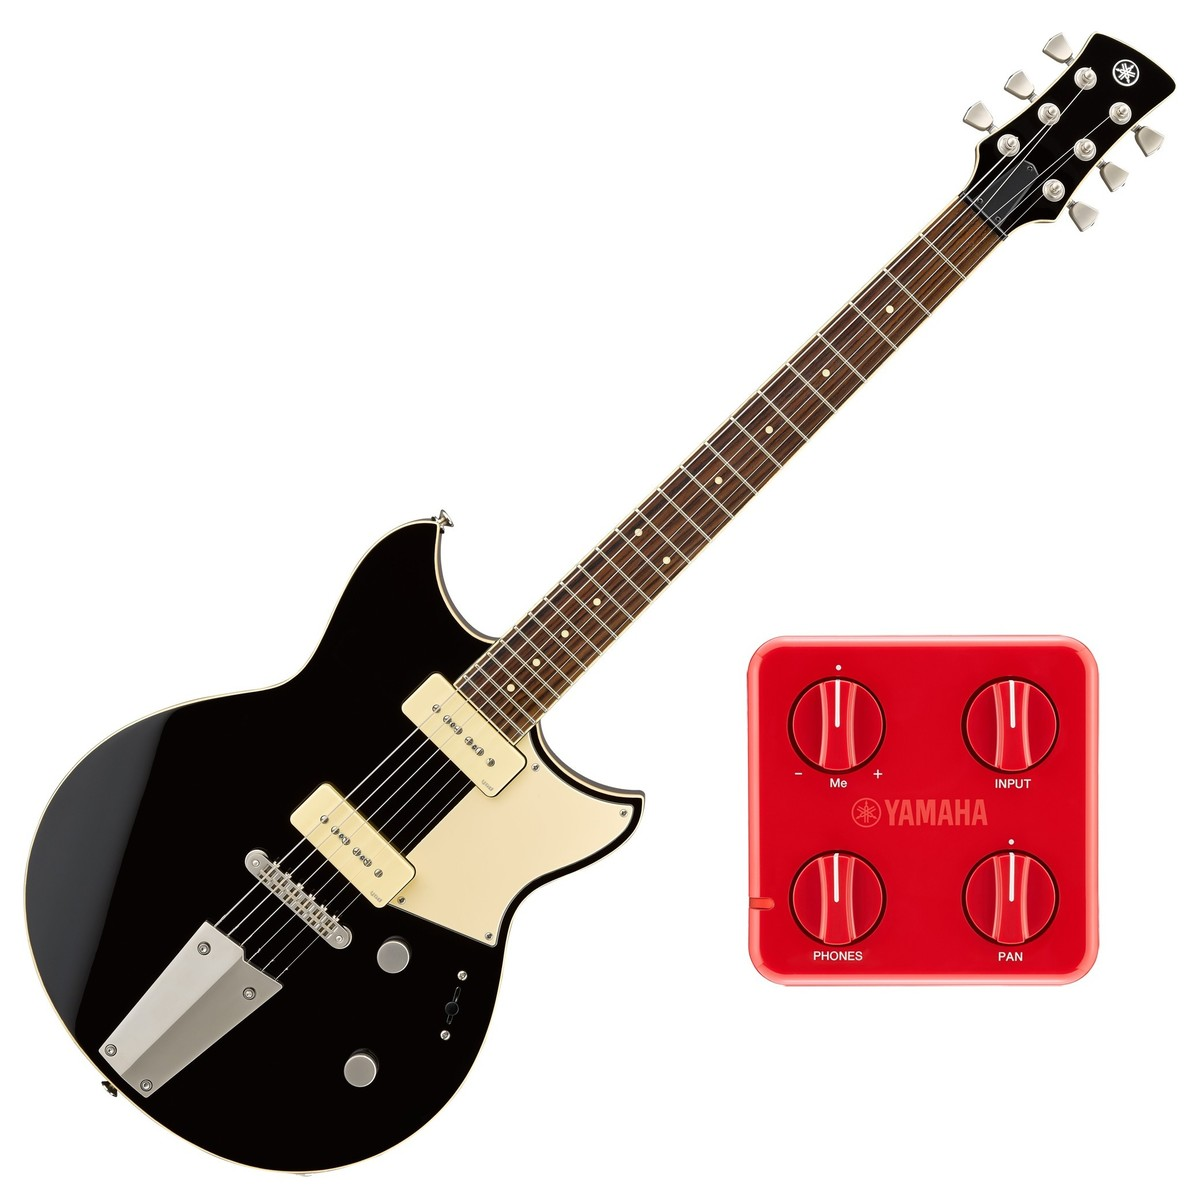 Yamaha Revstar Rs502t Black Free Gsc01 Session Cake At Gear4music 4 Pole 3 Way Switch Guitar